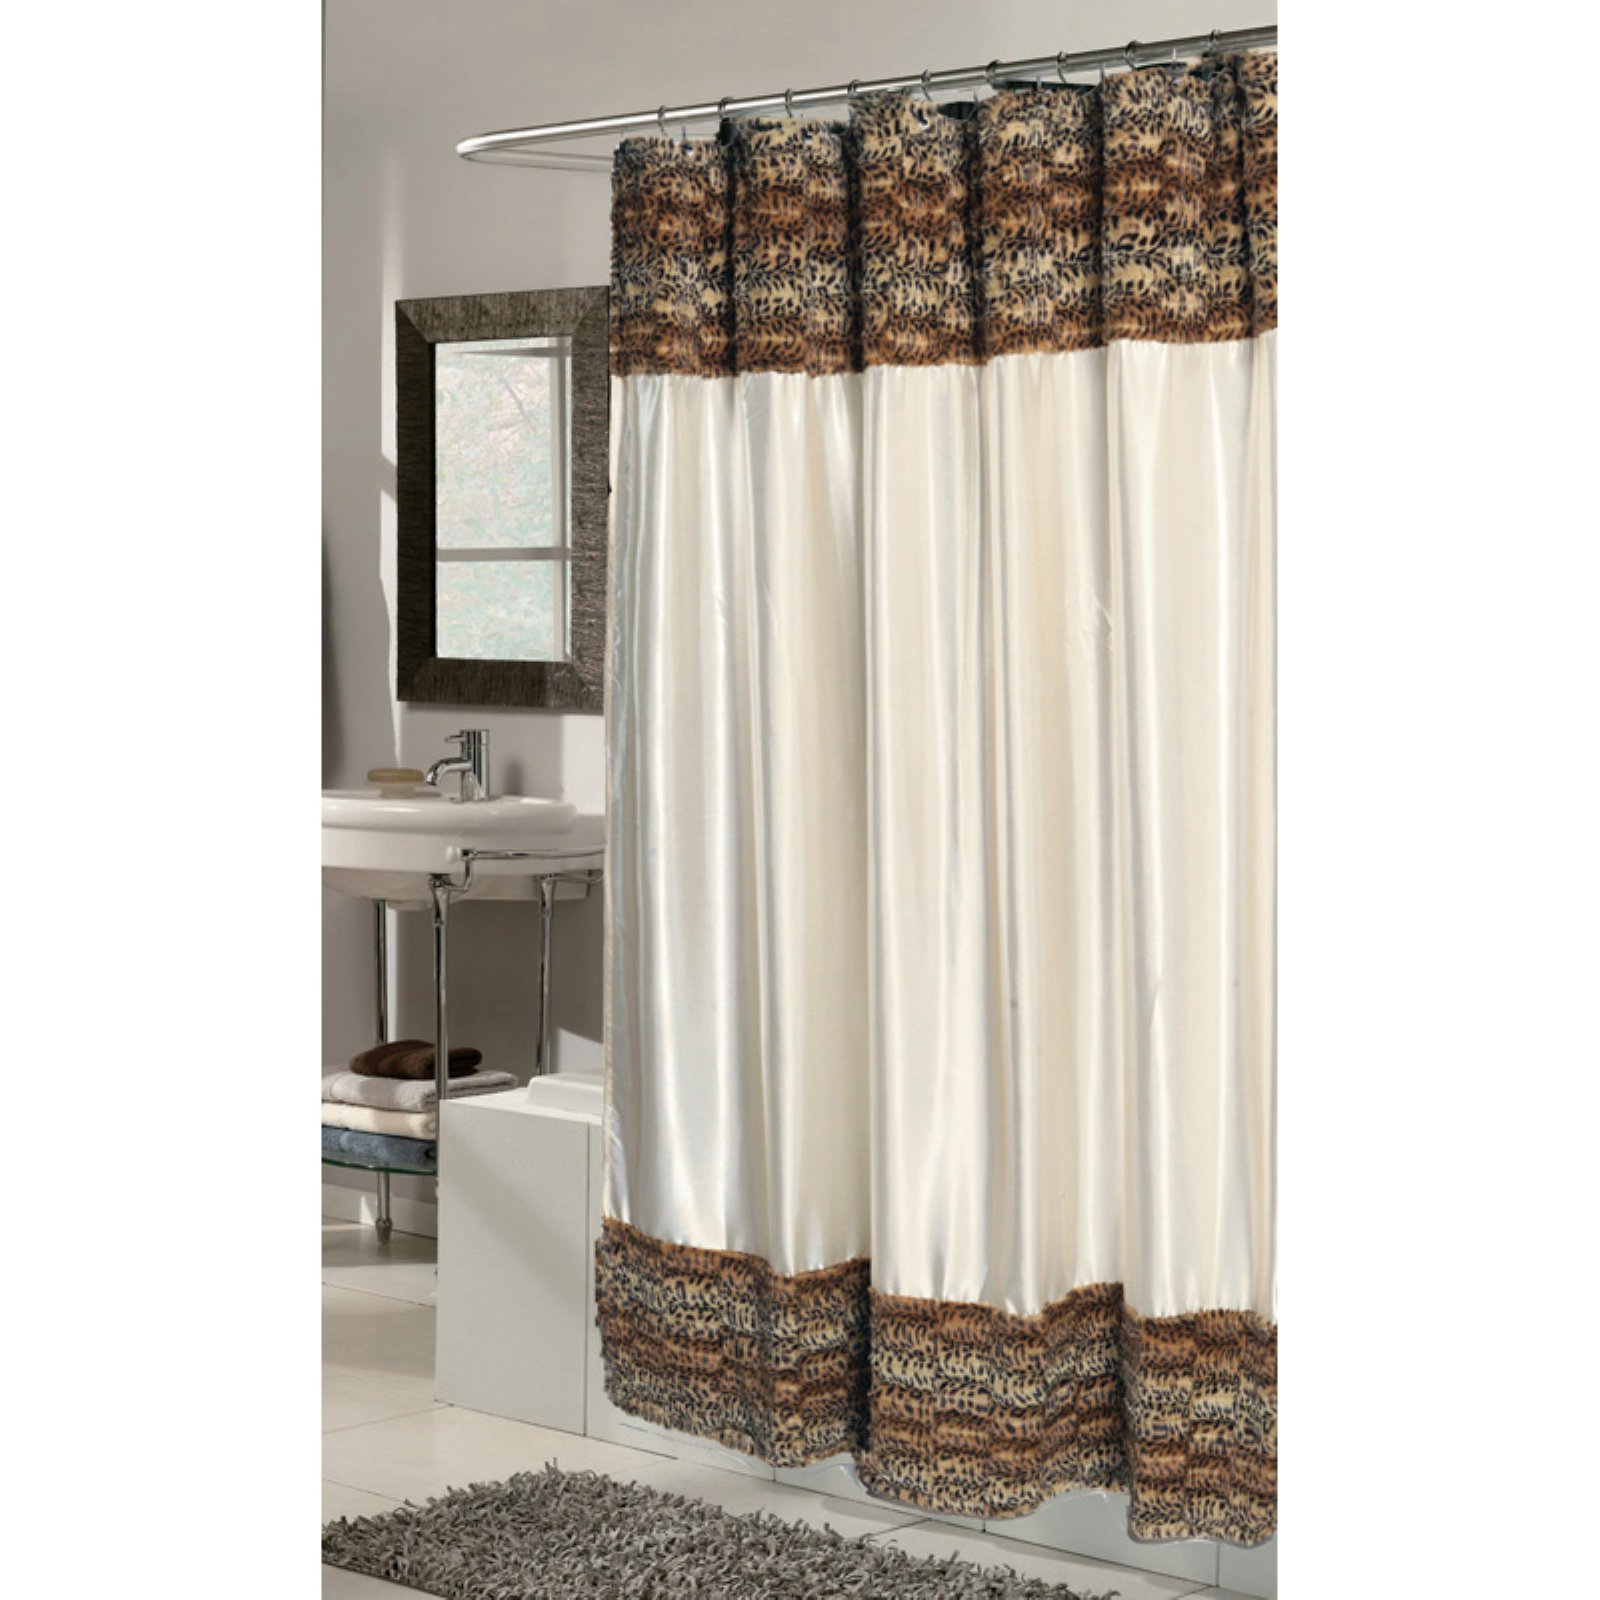 Carnation Home Fashions Animal Instincts Faux Fur Border Solid Shower Curtain with PEVA Liner